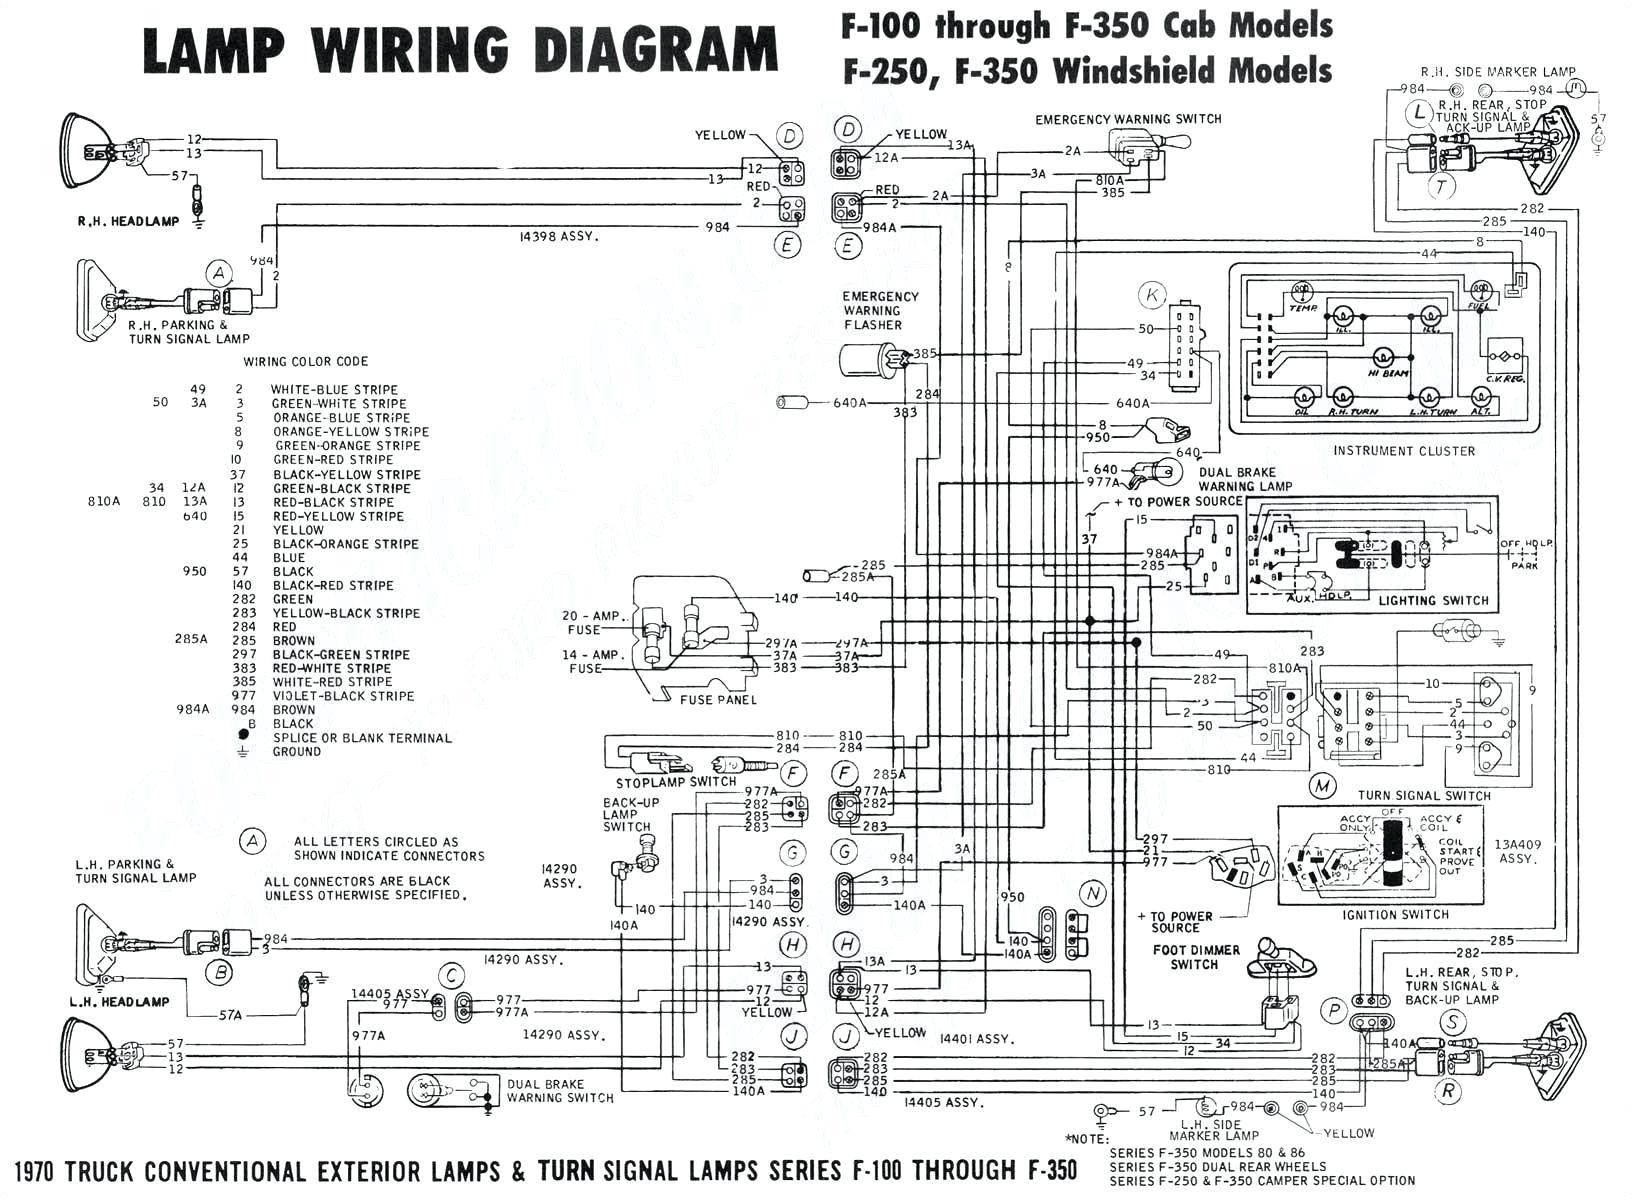 97 f150 tail light wiring harness wiring diagram centre 2004 f150 trailer light wiring harness